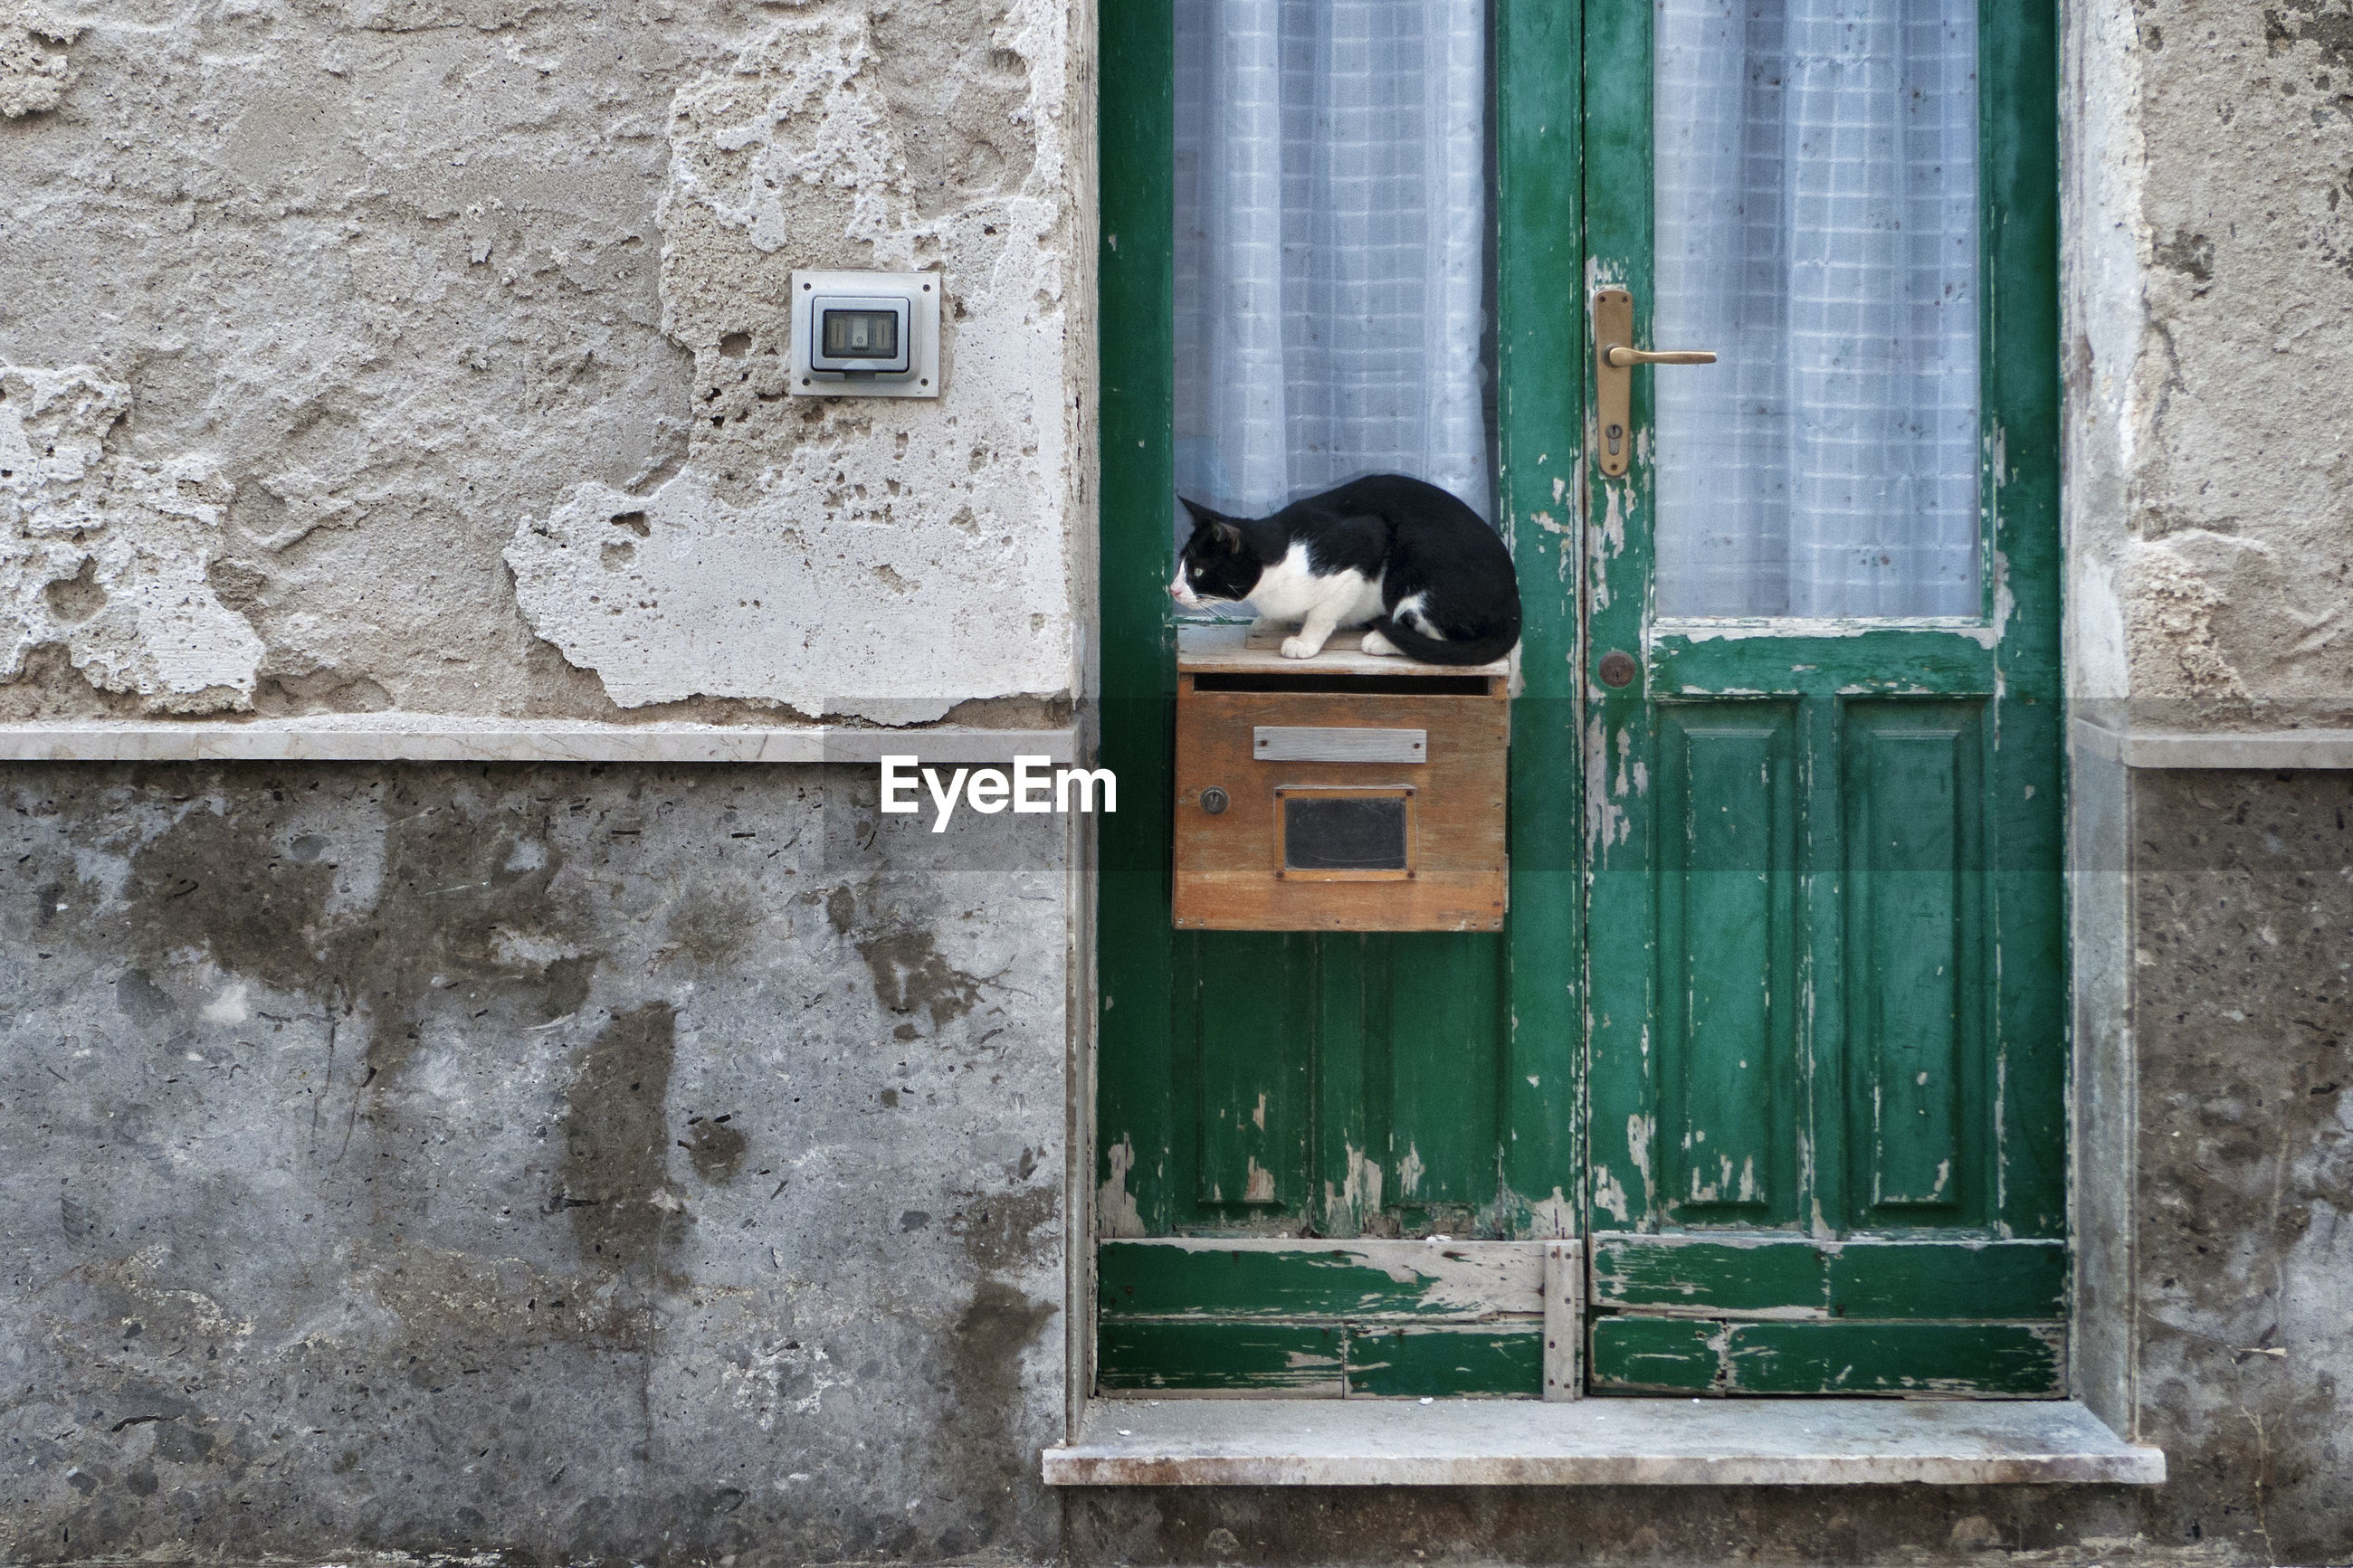 VIEW OF A CAT WITH CLOSED WINDOW